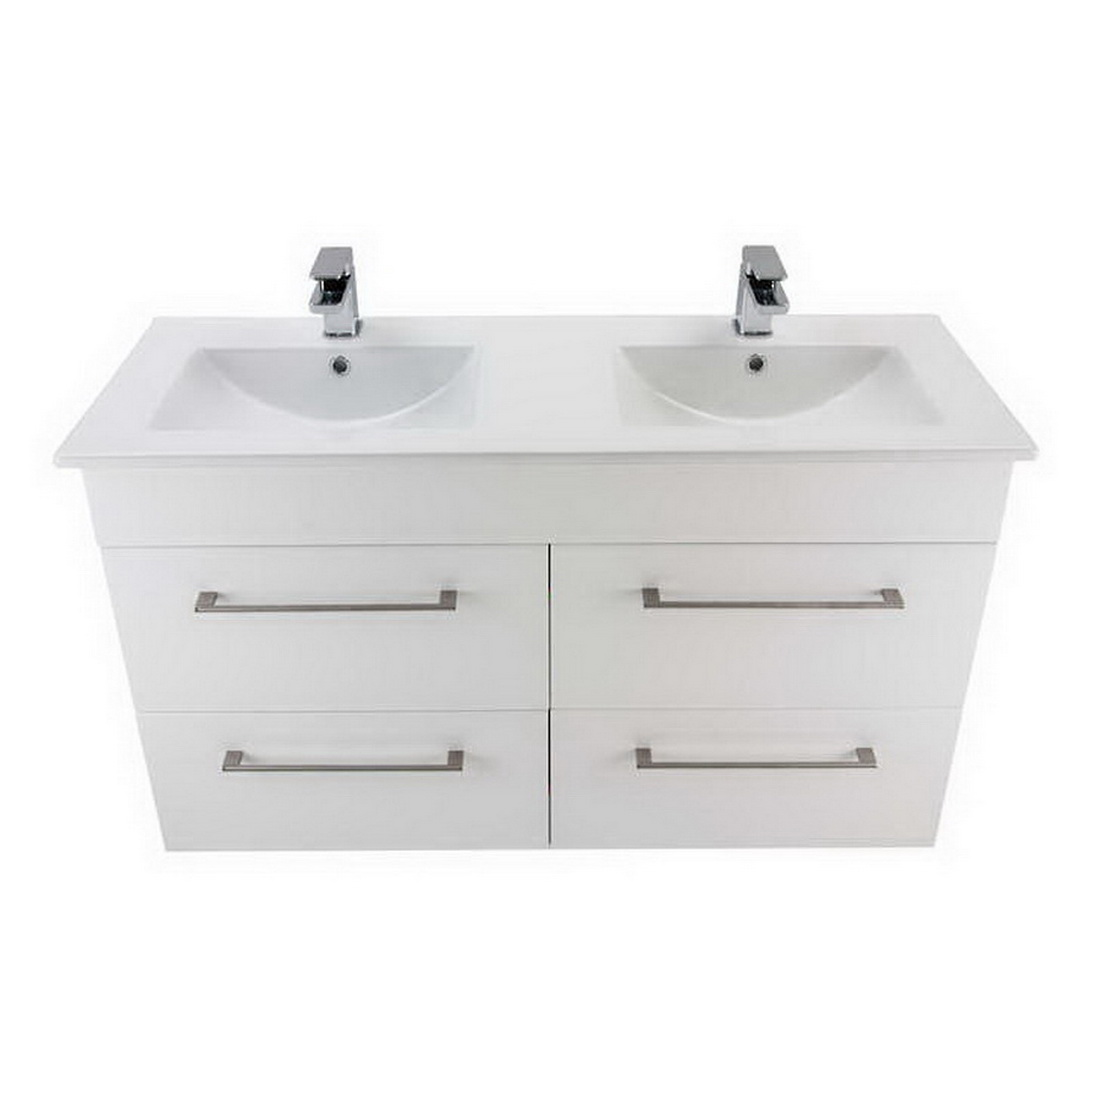 Newtech Montana Citi 4 Drawer Wall Hung Vanity 1200 X 685 X 460 Mm Gloss White 3237 Vanity Wall Hung Vanities Bathrooms Accessories Bathrooms Plumbing Shop Placemakers